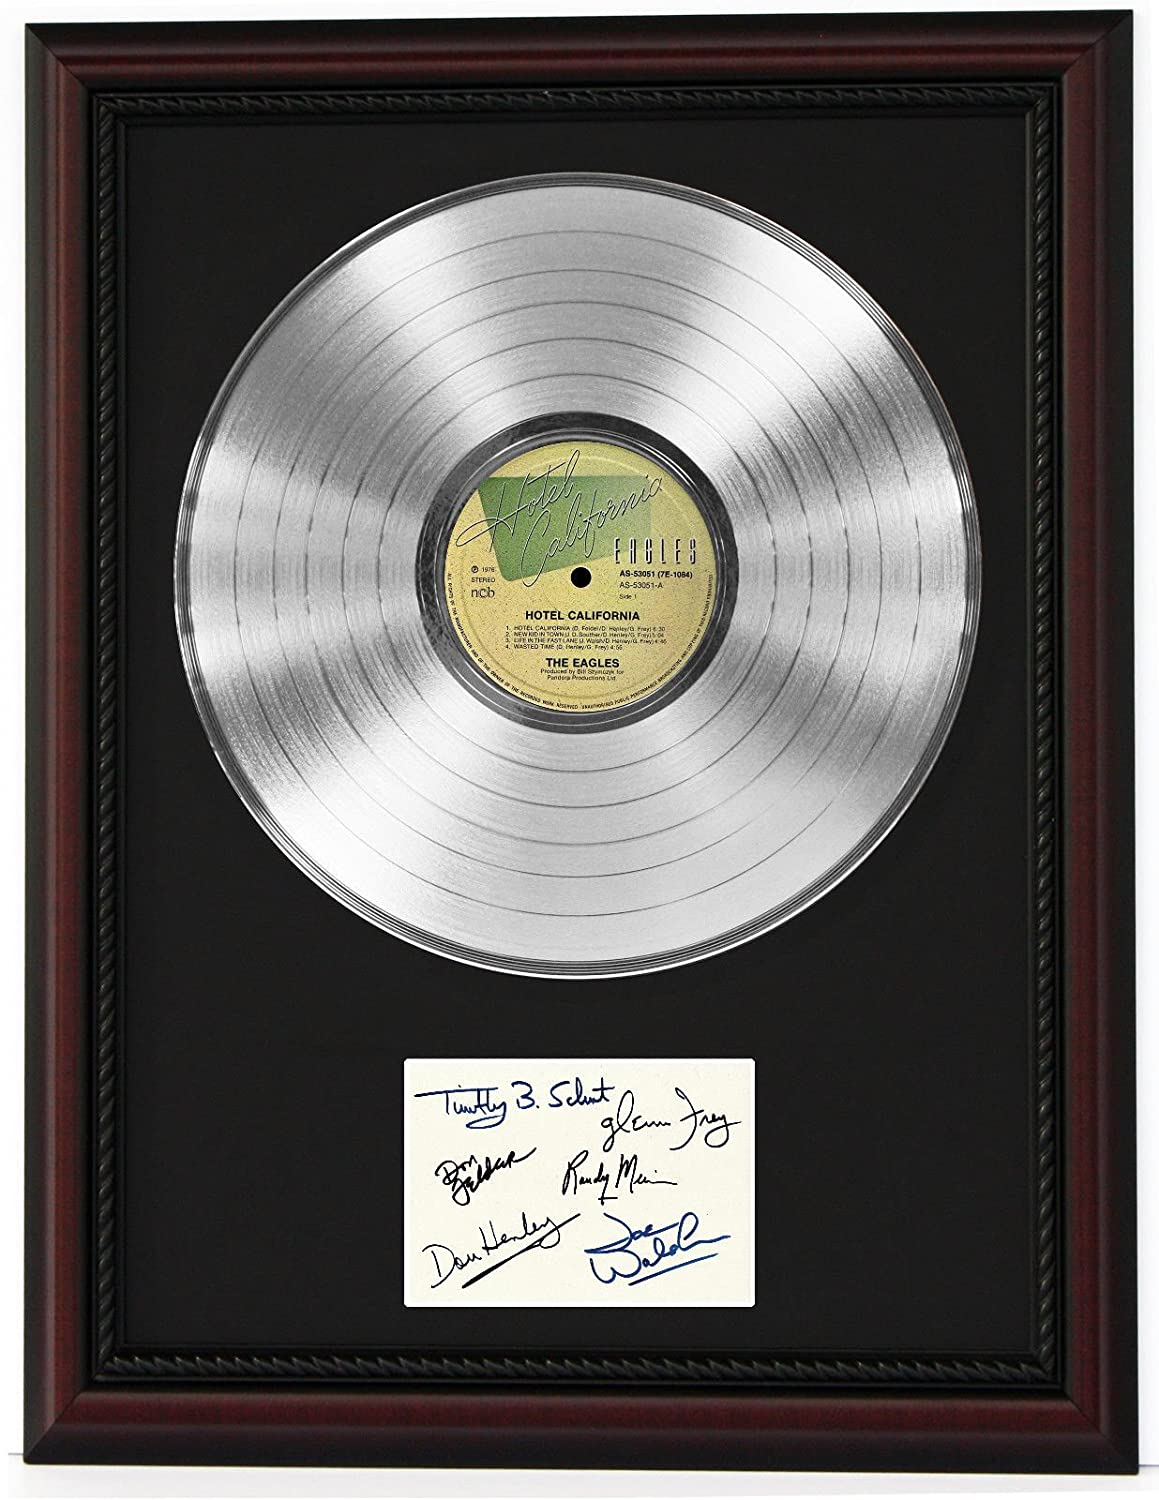 Eagles Cherrywood Framed Platinum Lp Ltd Signature Display C3